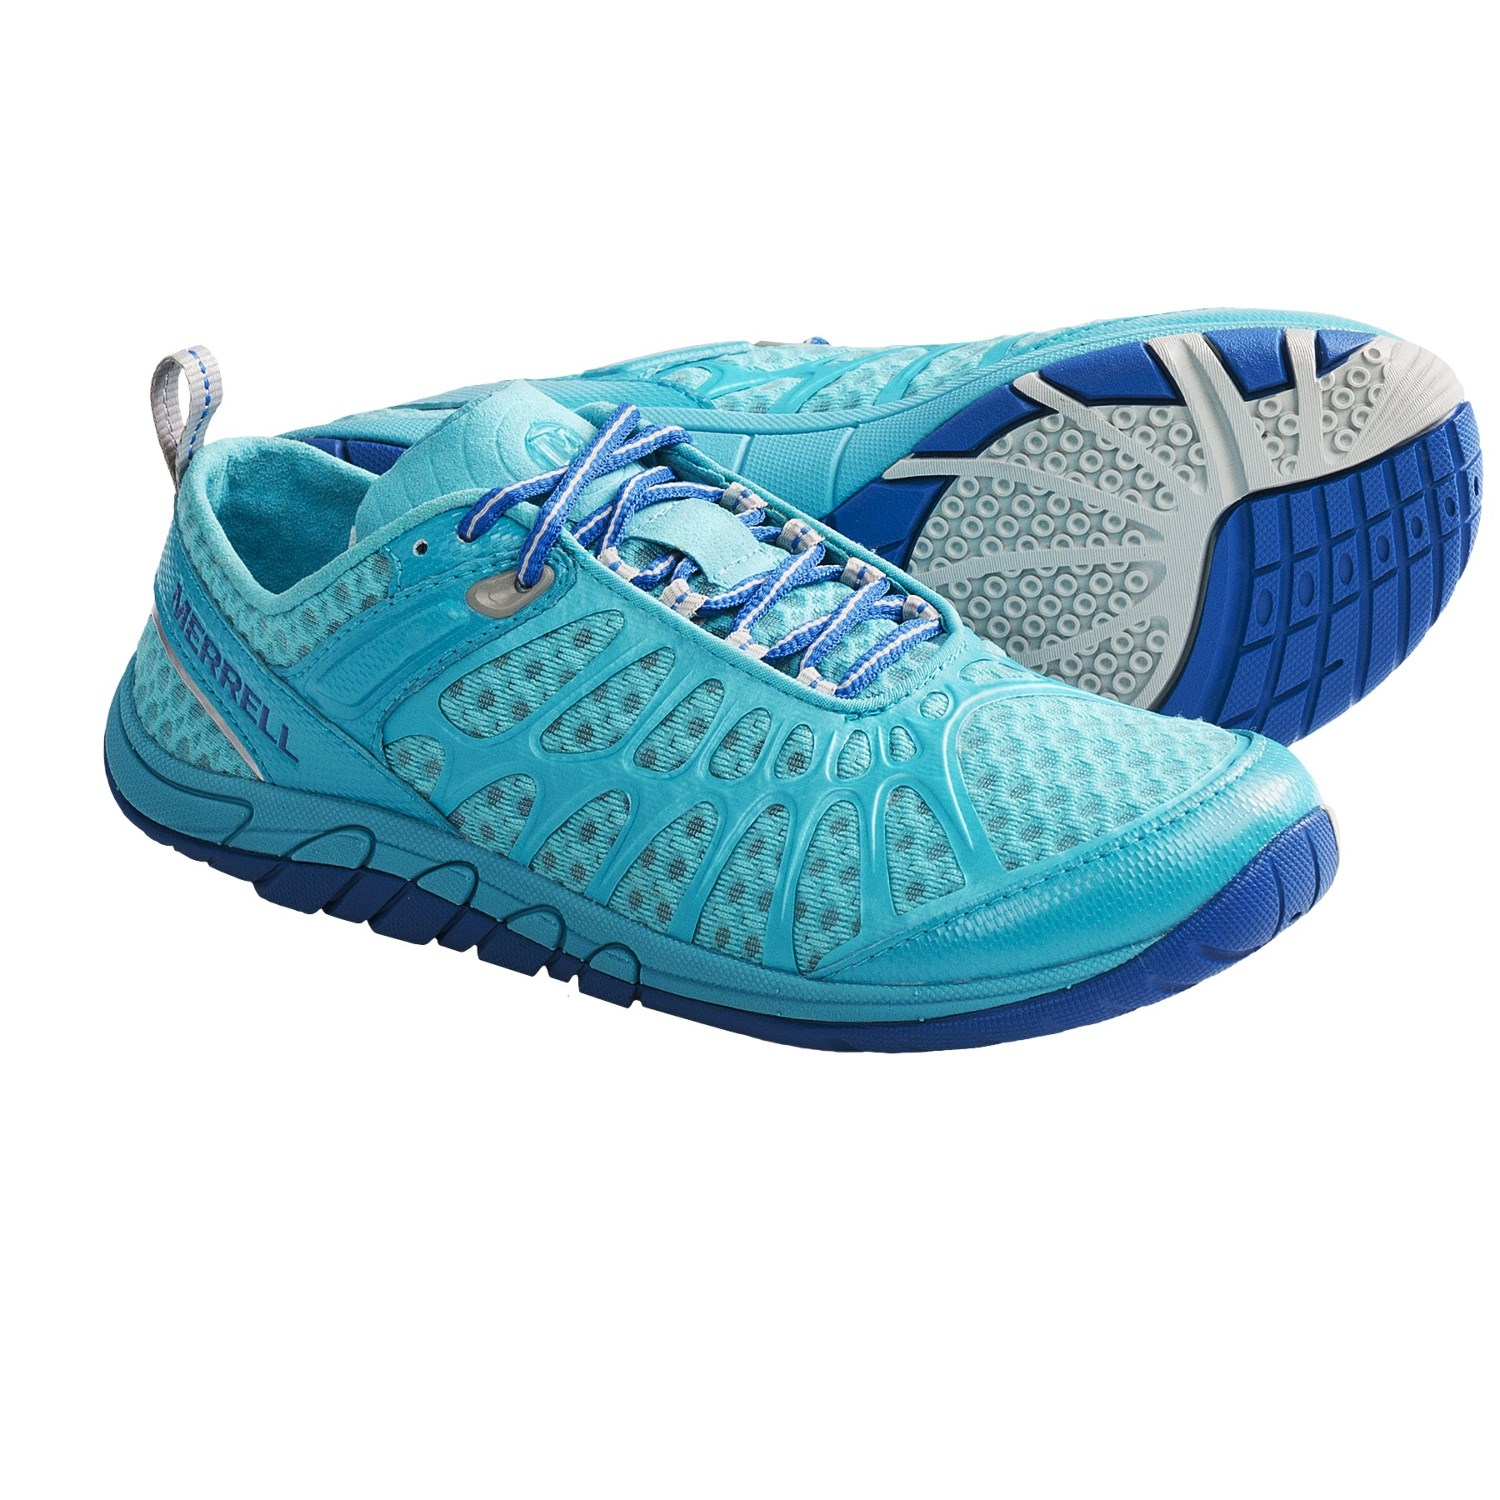 Merrell Womens Shoes at Sierra Trading Post1500